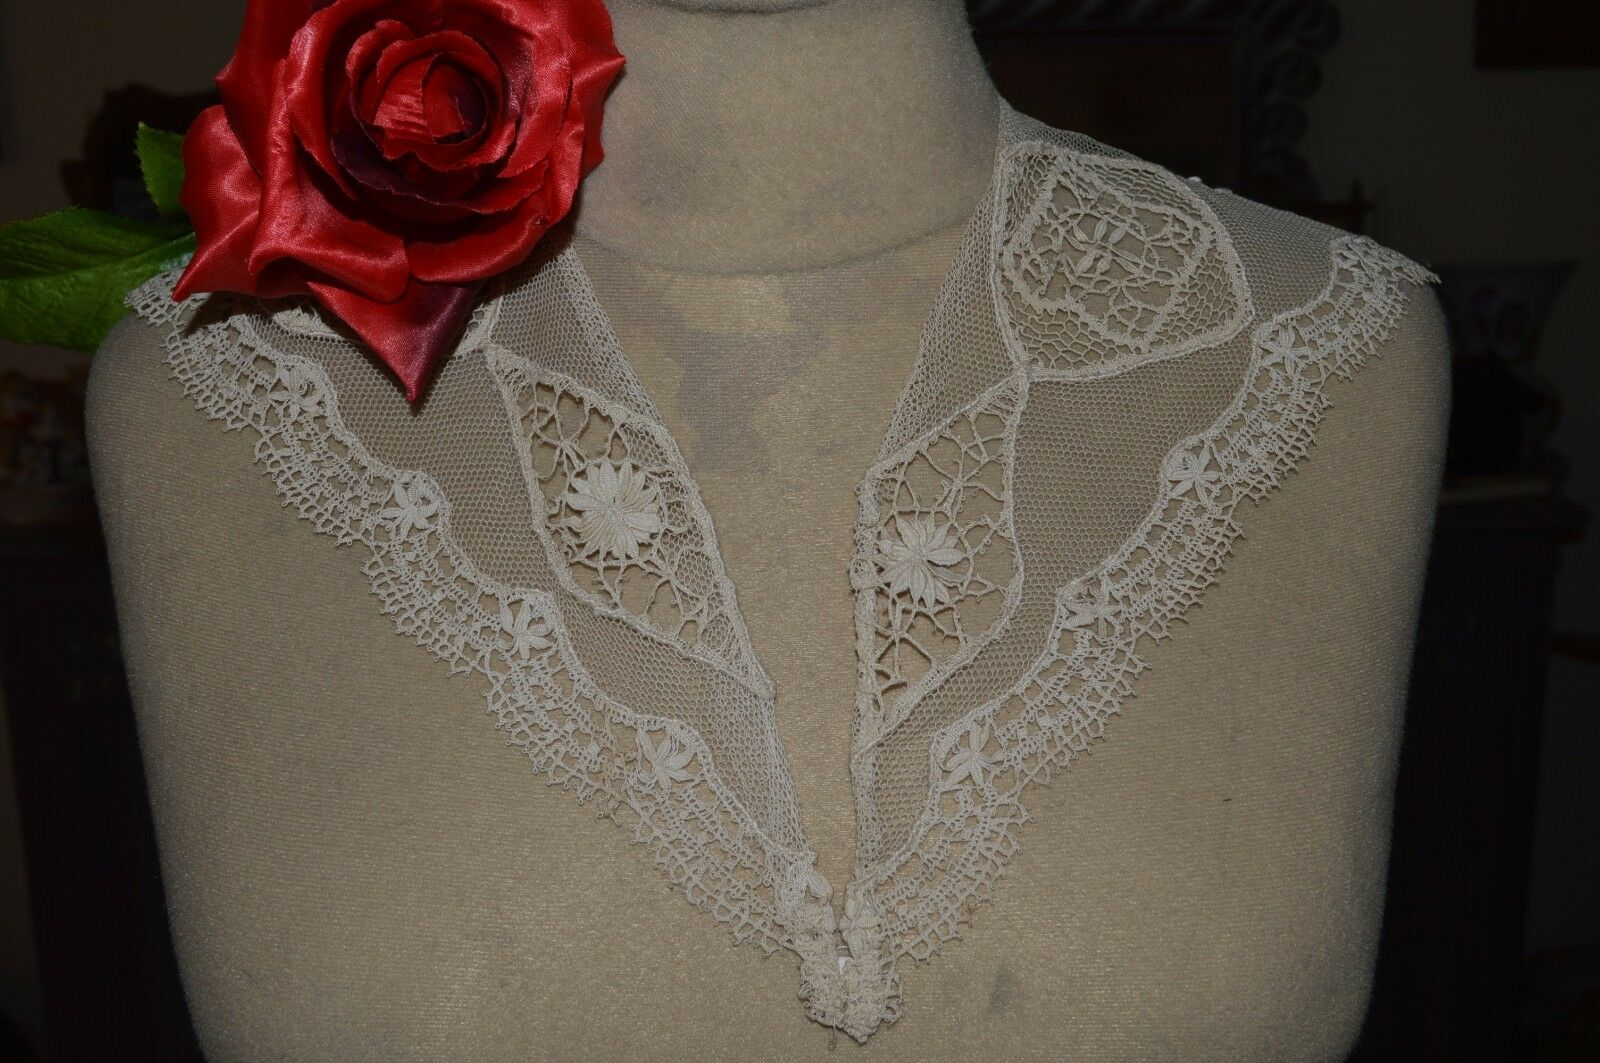 ANTIQUE COL TULLE EMBROIDERY FLOWERS AND APPLICATIONS DENTELLE